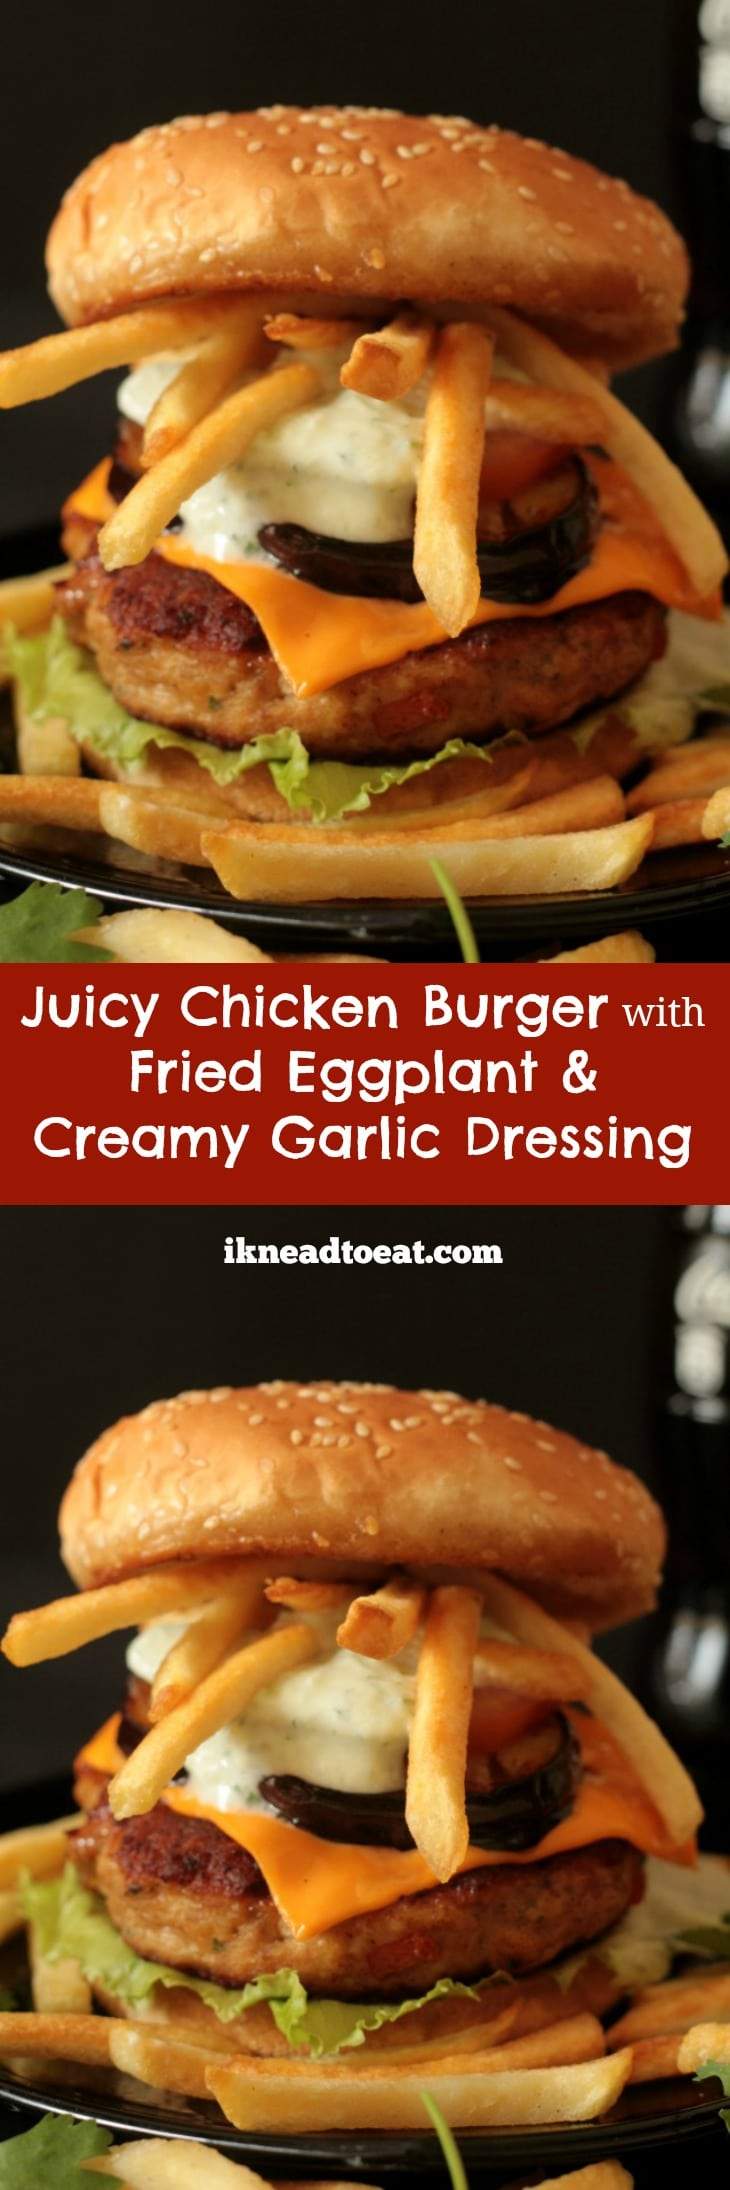 Juicy Chicken Burger with Fried Eggplant & Creamy Garlic Dressing